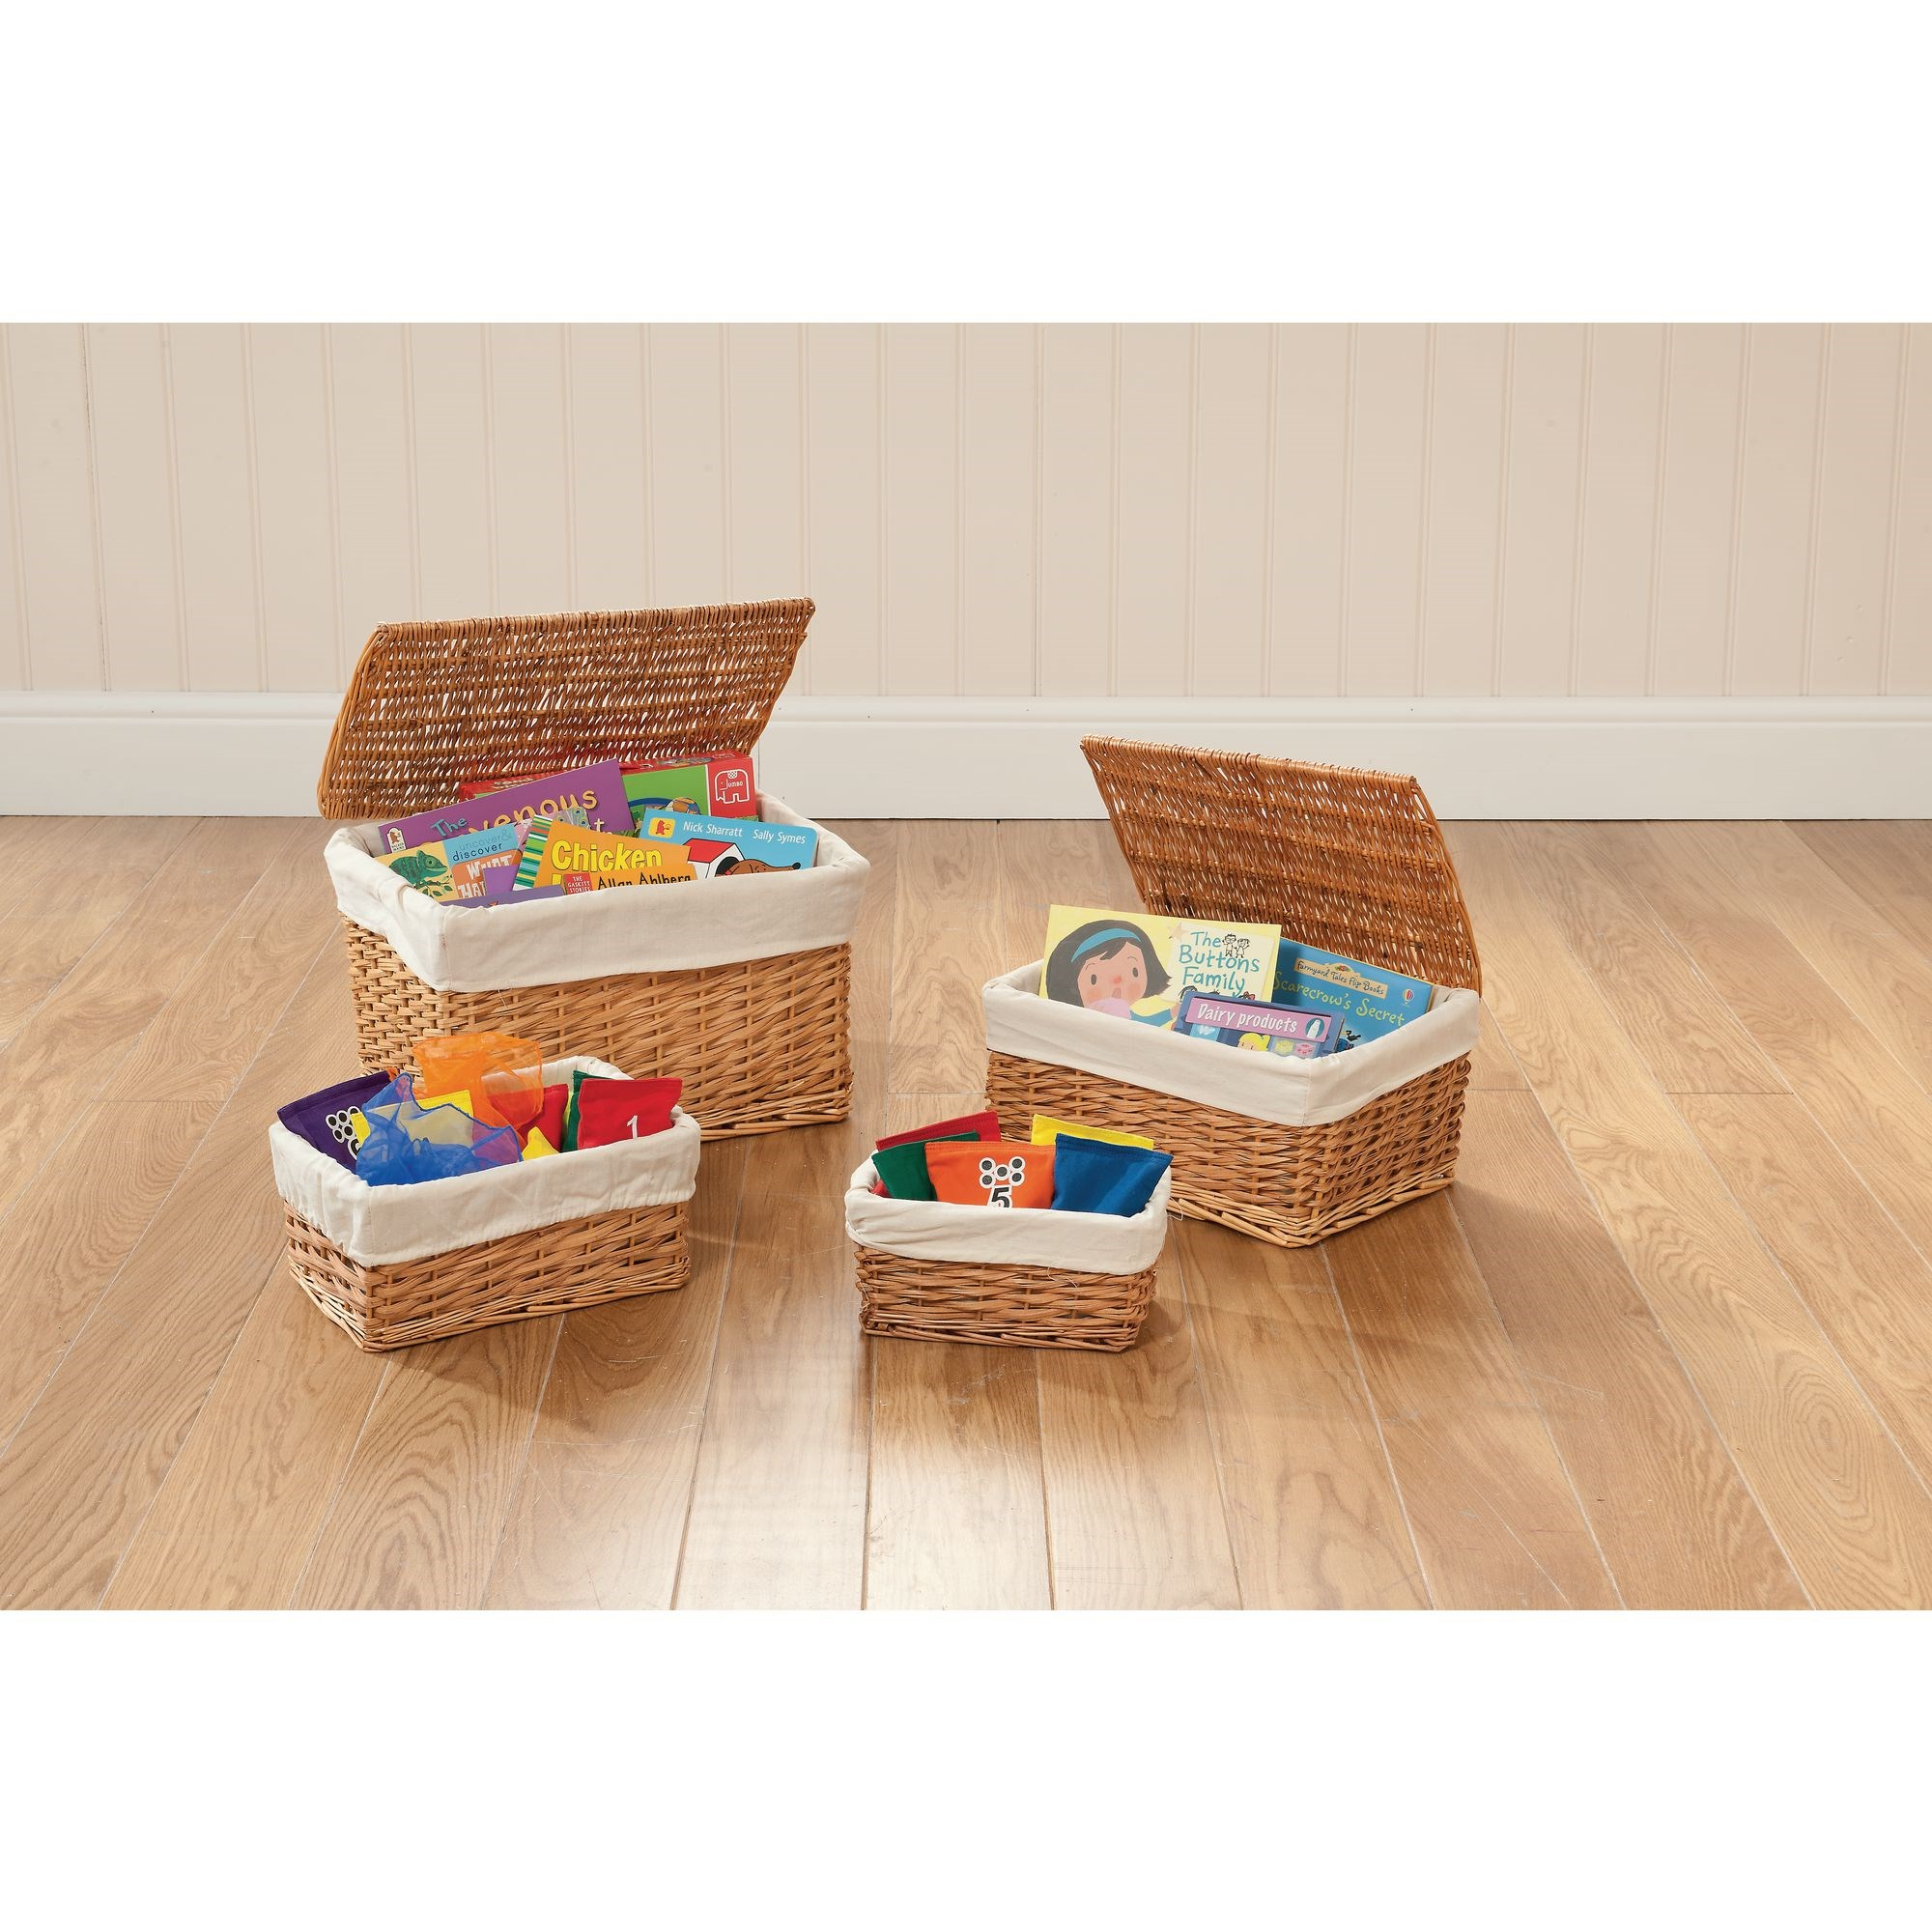 Wicker Hamper & Storage Basket